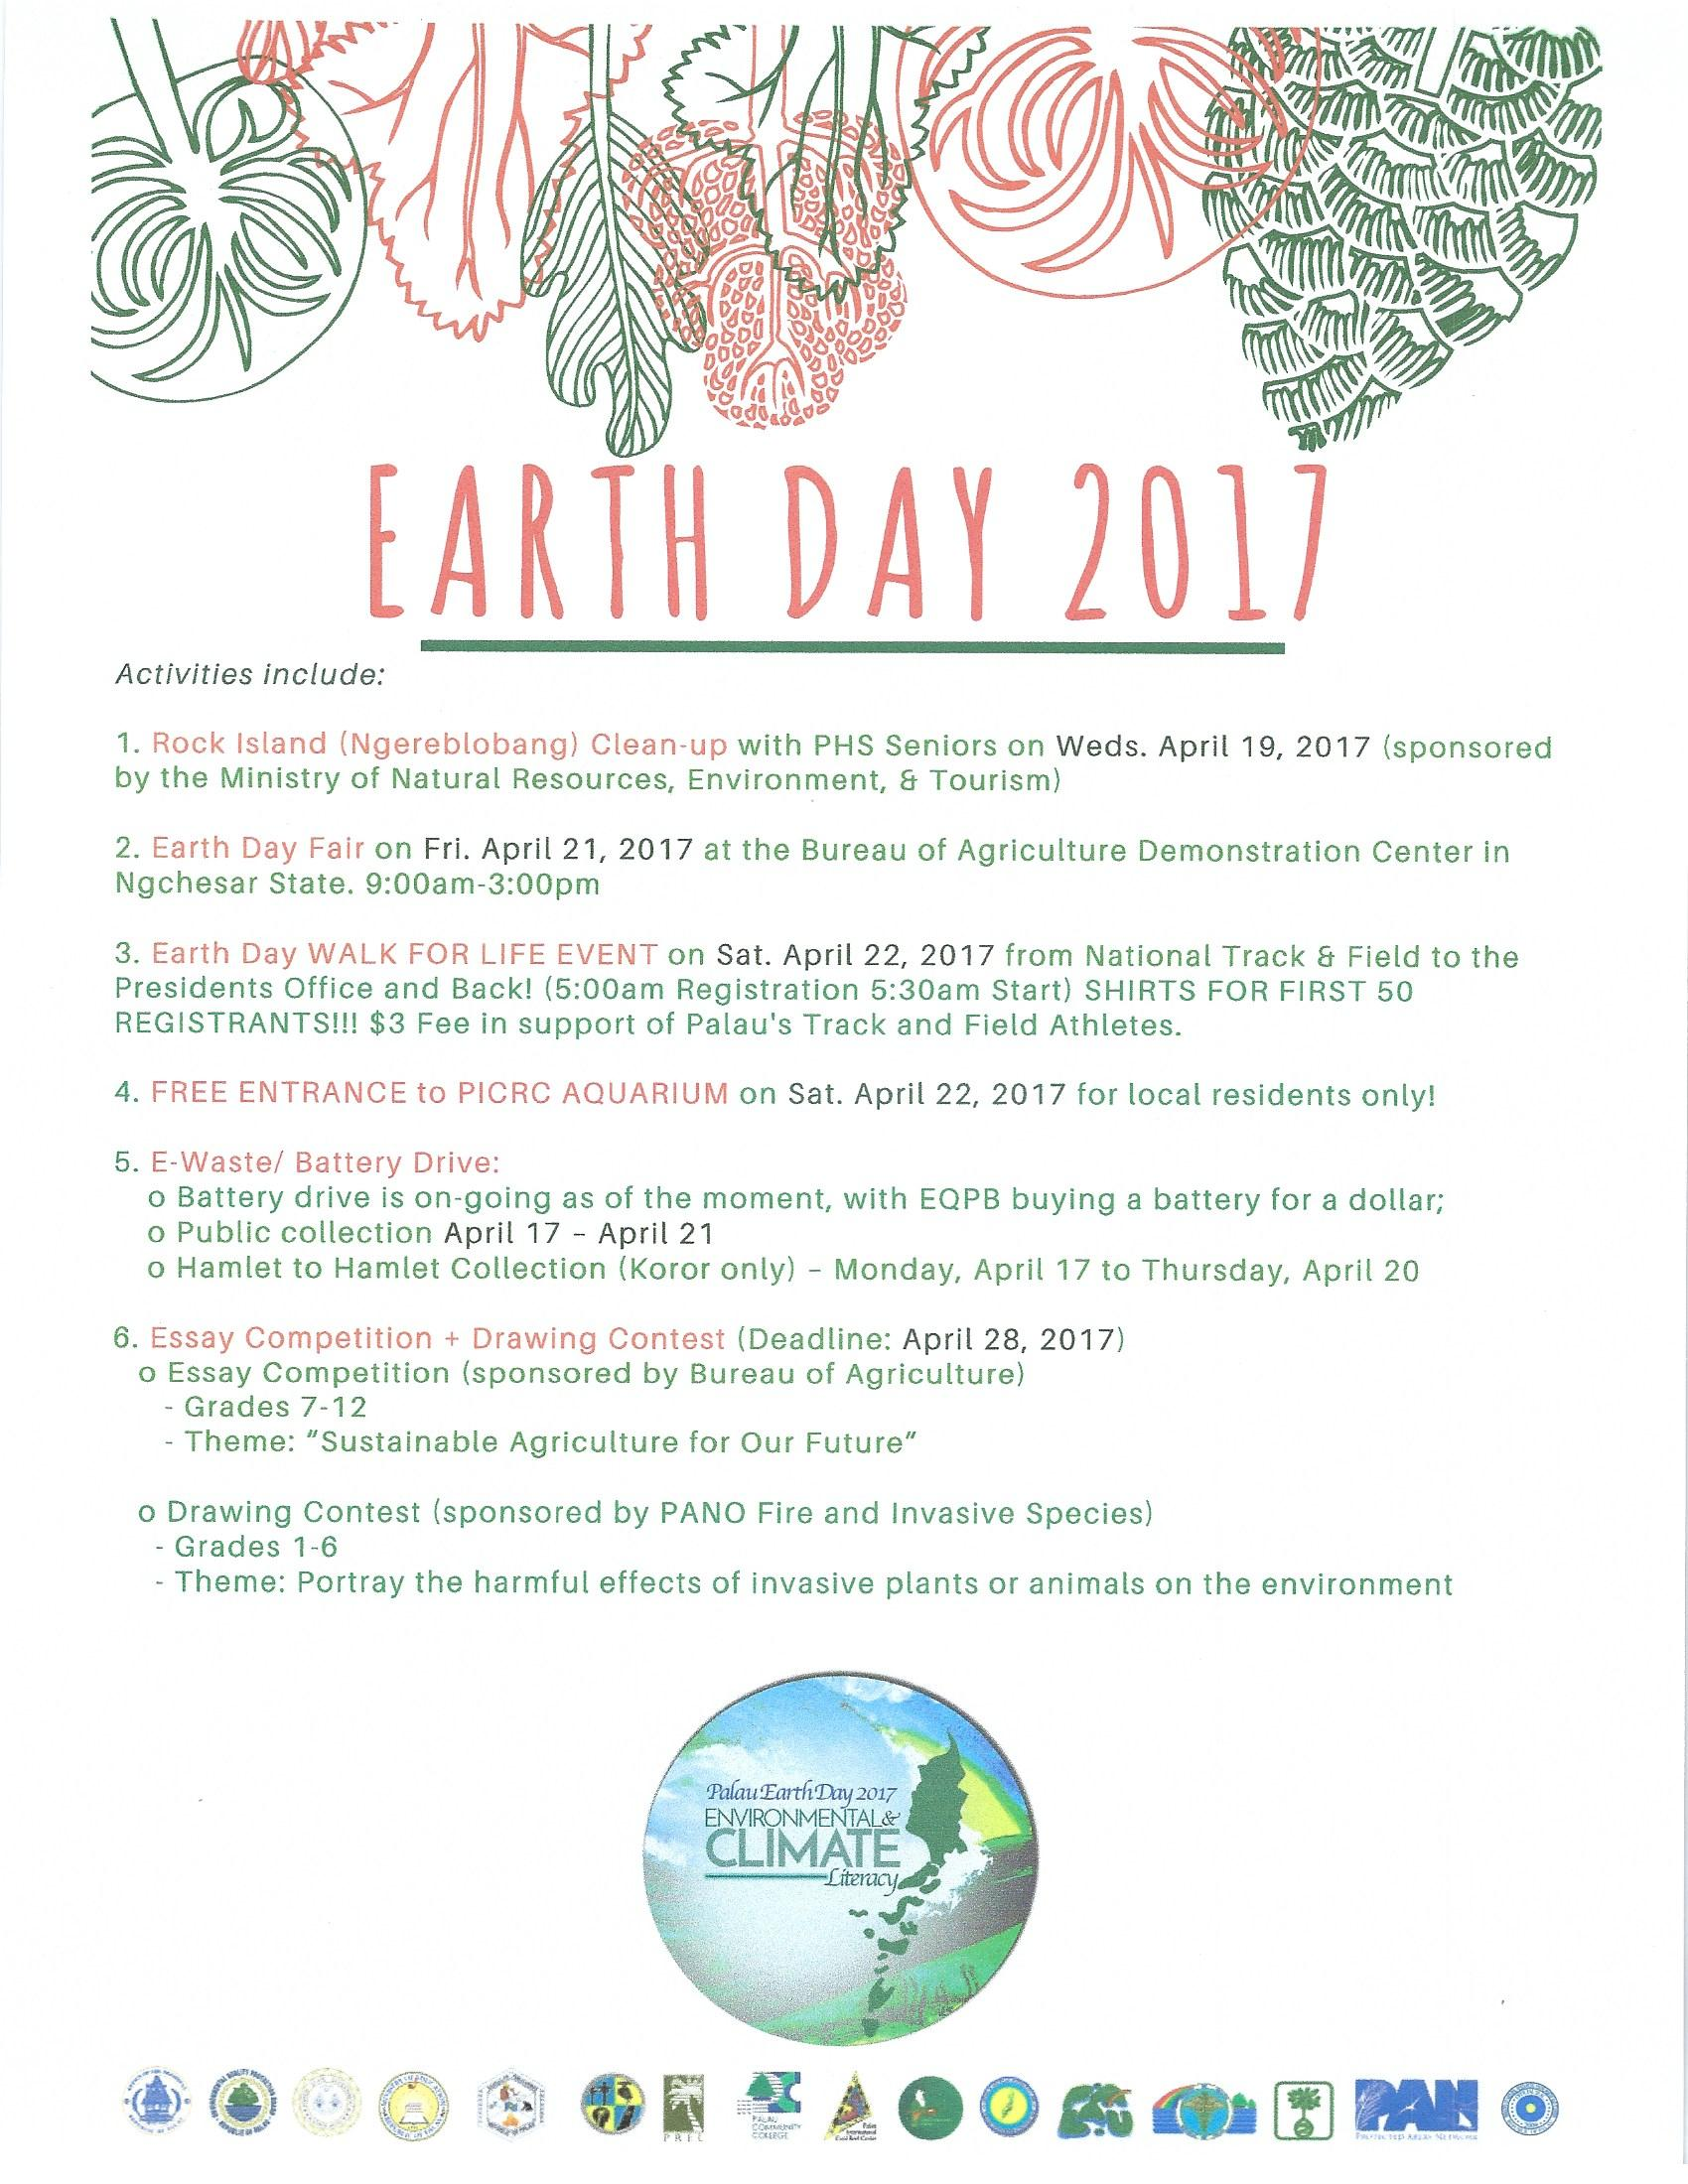 essay on earth thesis driven essay university of manitoba clayton  news national government earth day 2017 activities and program